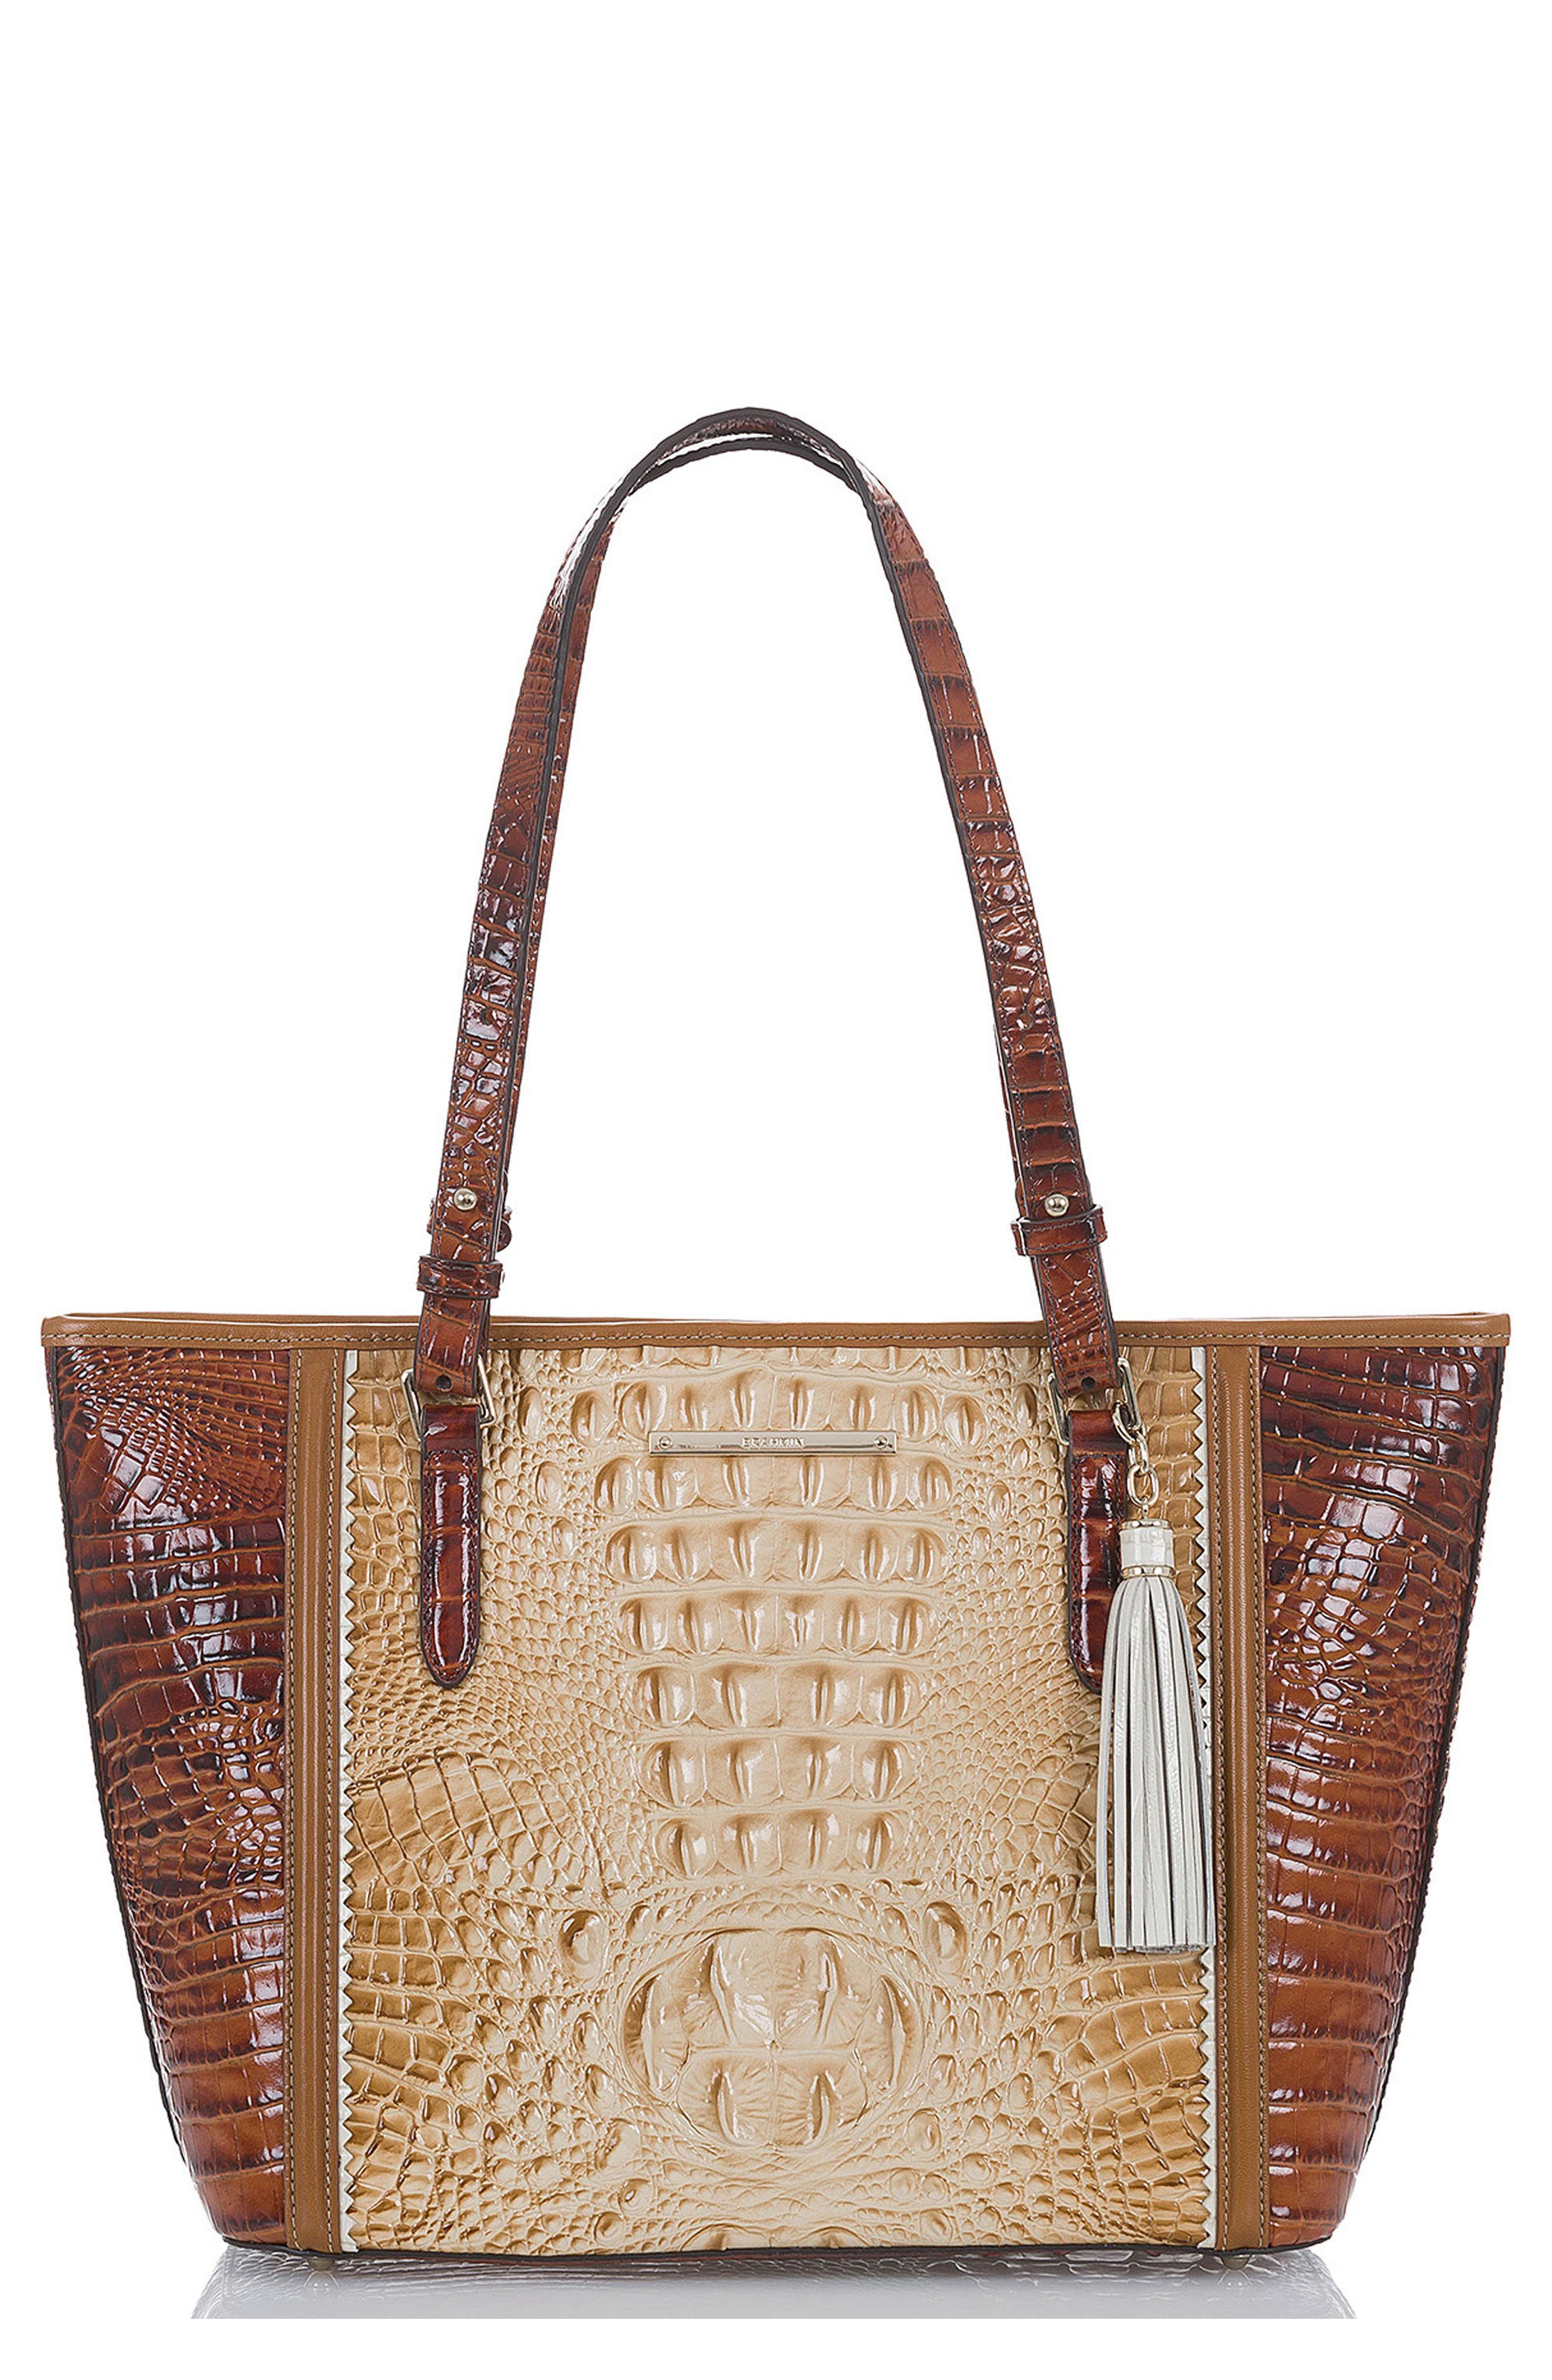 Medium Asher Embossed Leather Tote,                             Main thumbnail 1, color,                             250